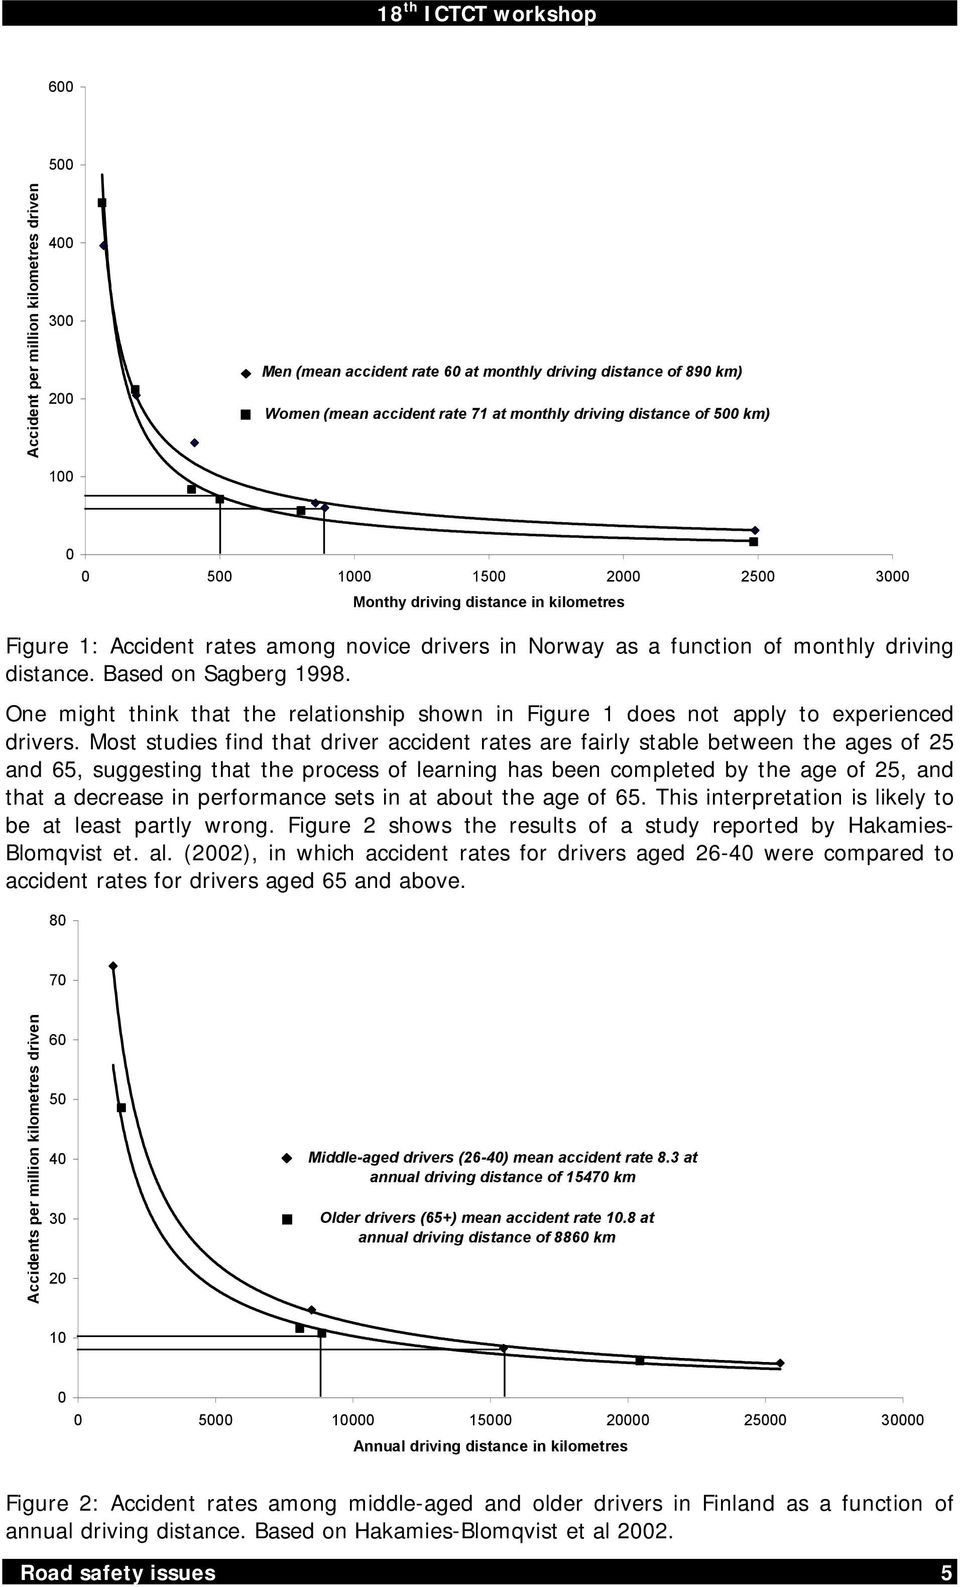 One might think that the relationship shown in Figure 1 does not apply to experienced drivers.